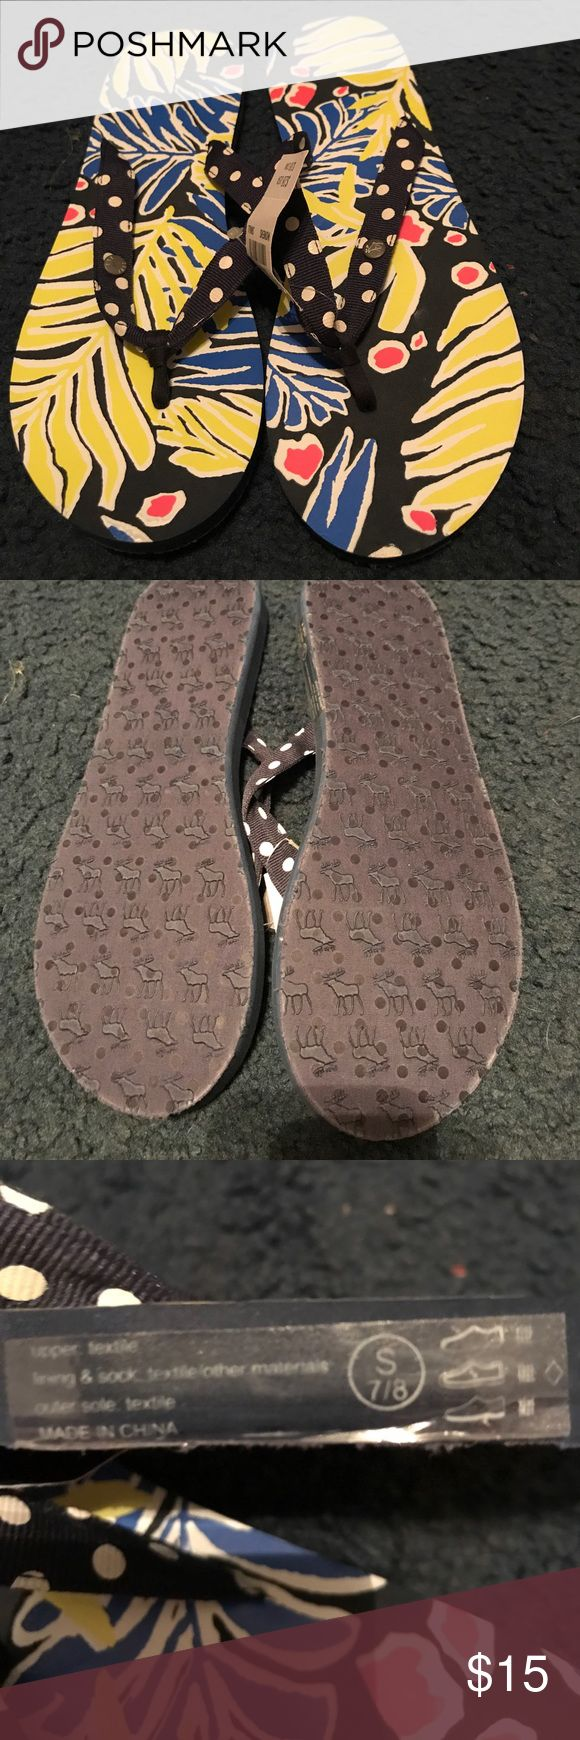 Abercrombie and Fitch flip-flops Abercrombie and fitch floral flip-flops with polkadots straps size is small witch is 7/8 Abercrombie & Fitch Shoes Sandals